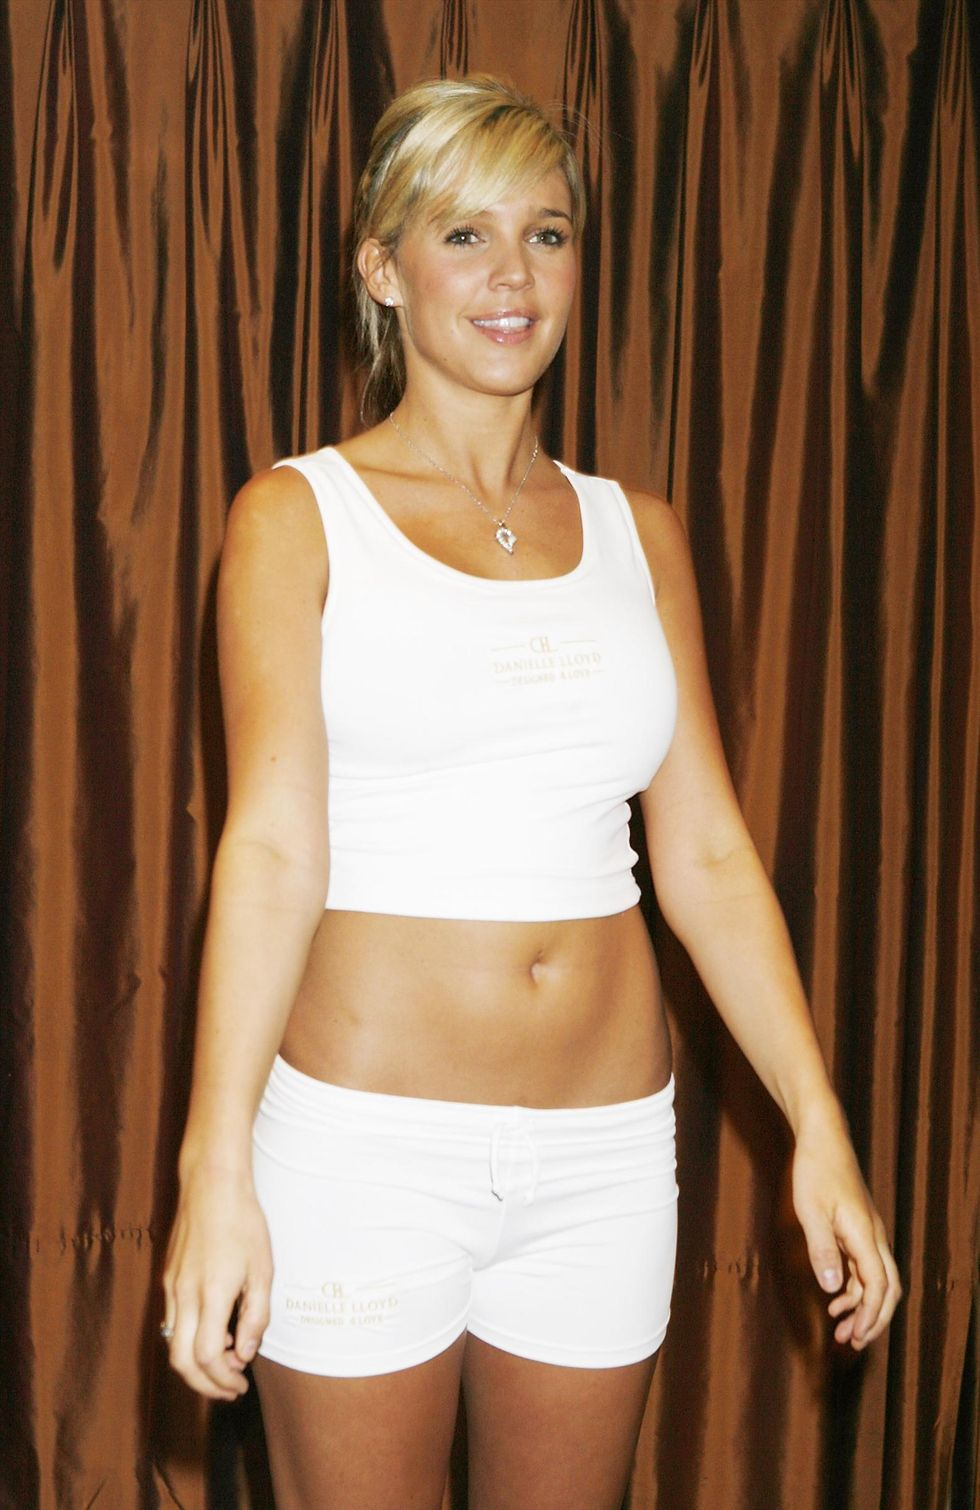 danielle-lloyd-launches-her-fitness-dvd-01